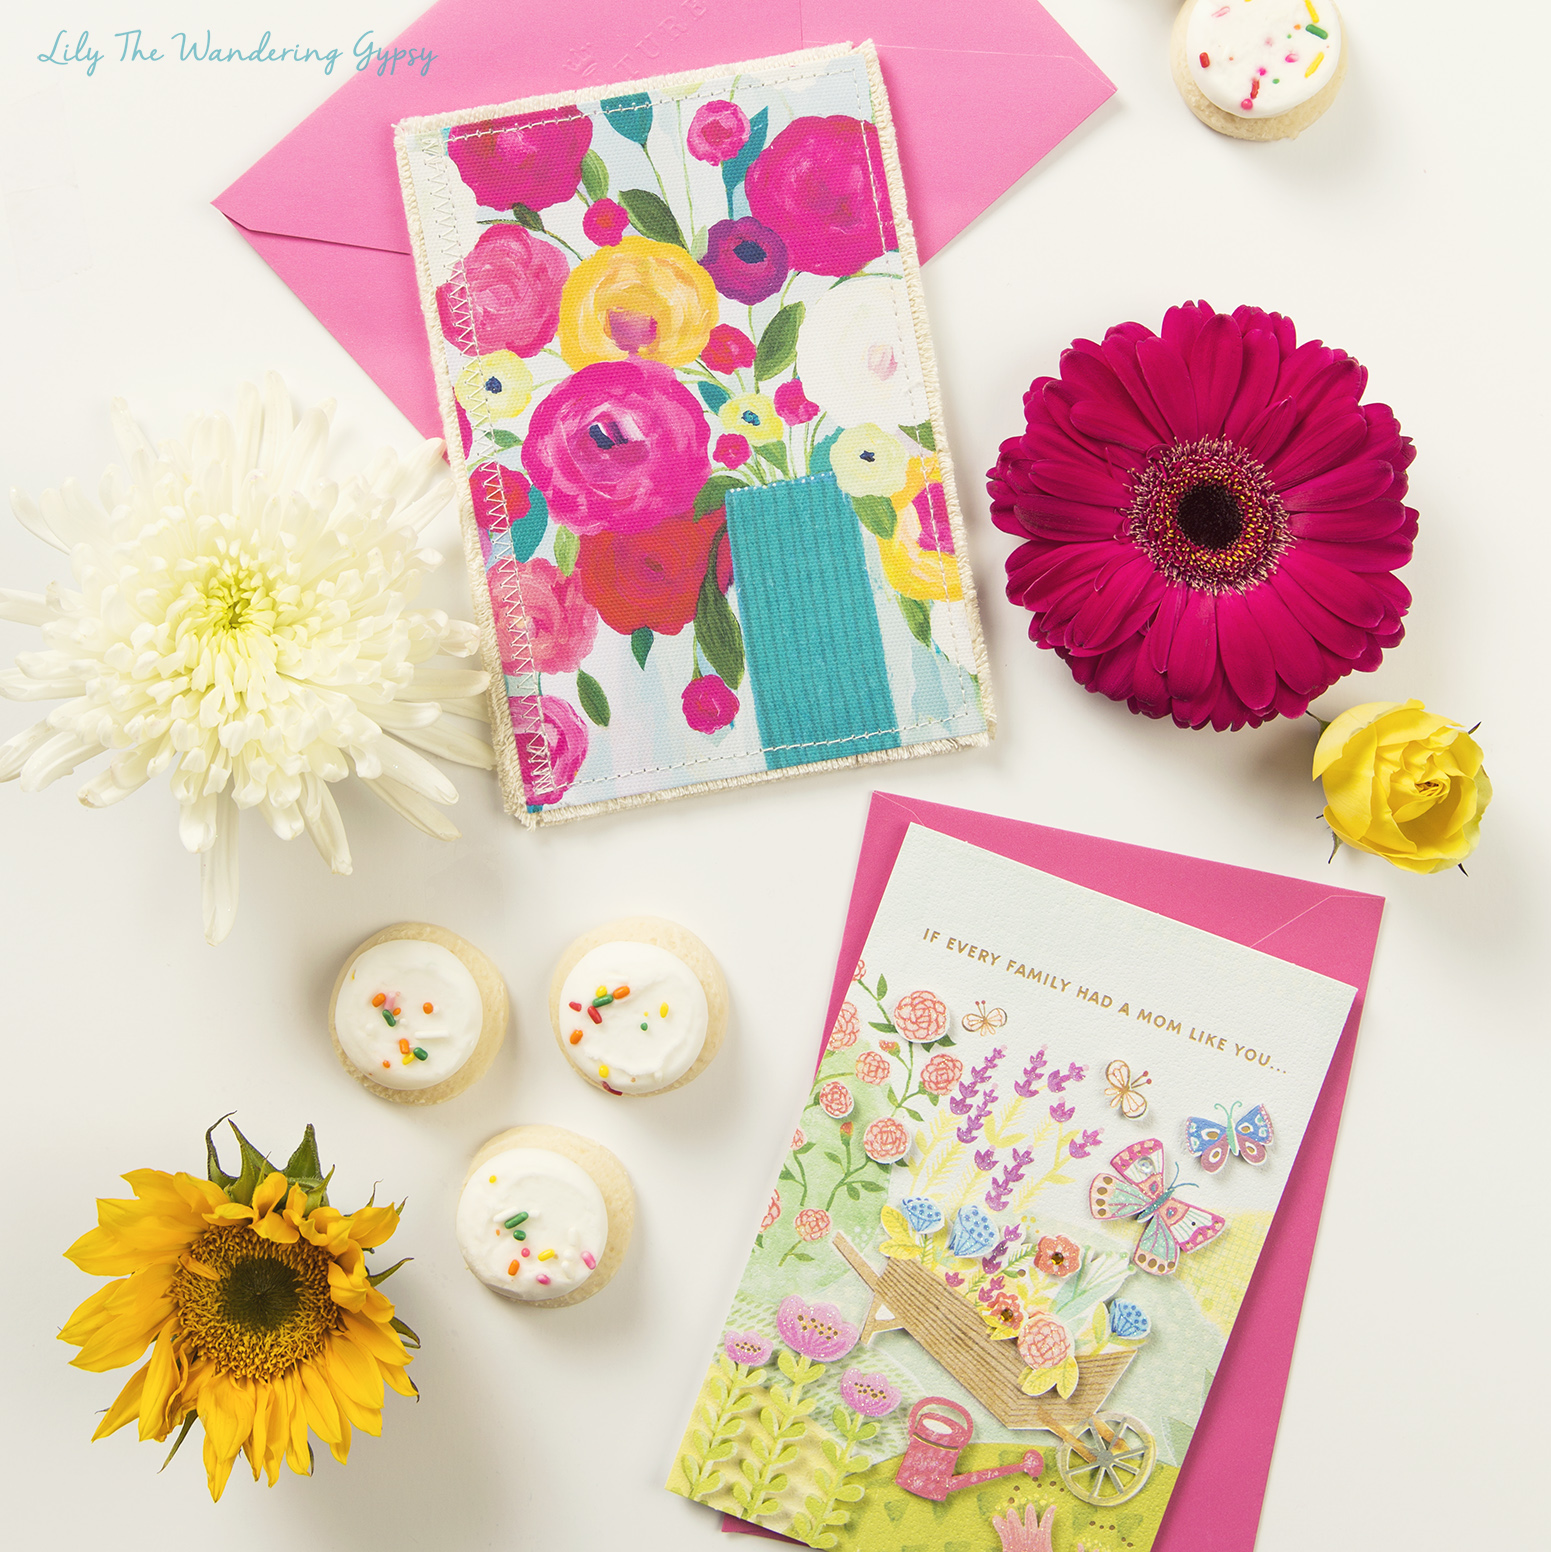 Adorable Mother's Day Gift Ideas #HallmarkForMom